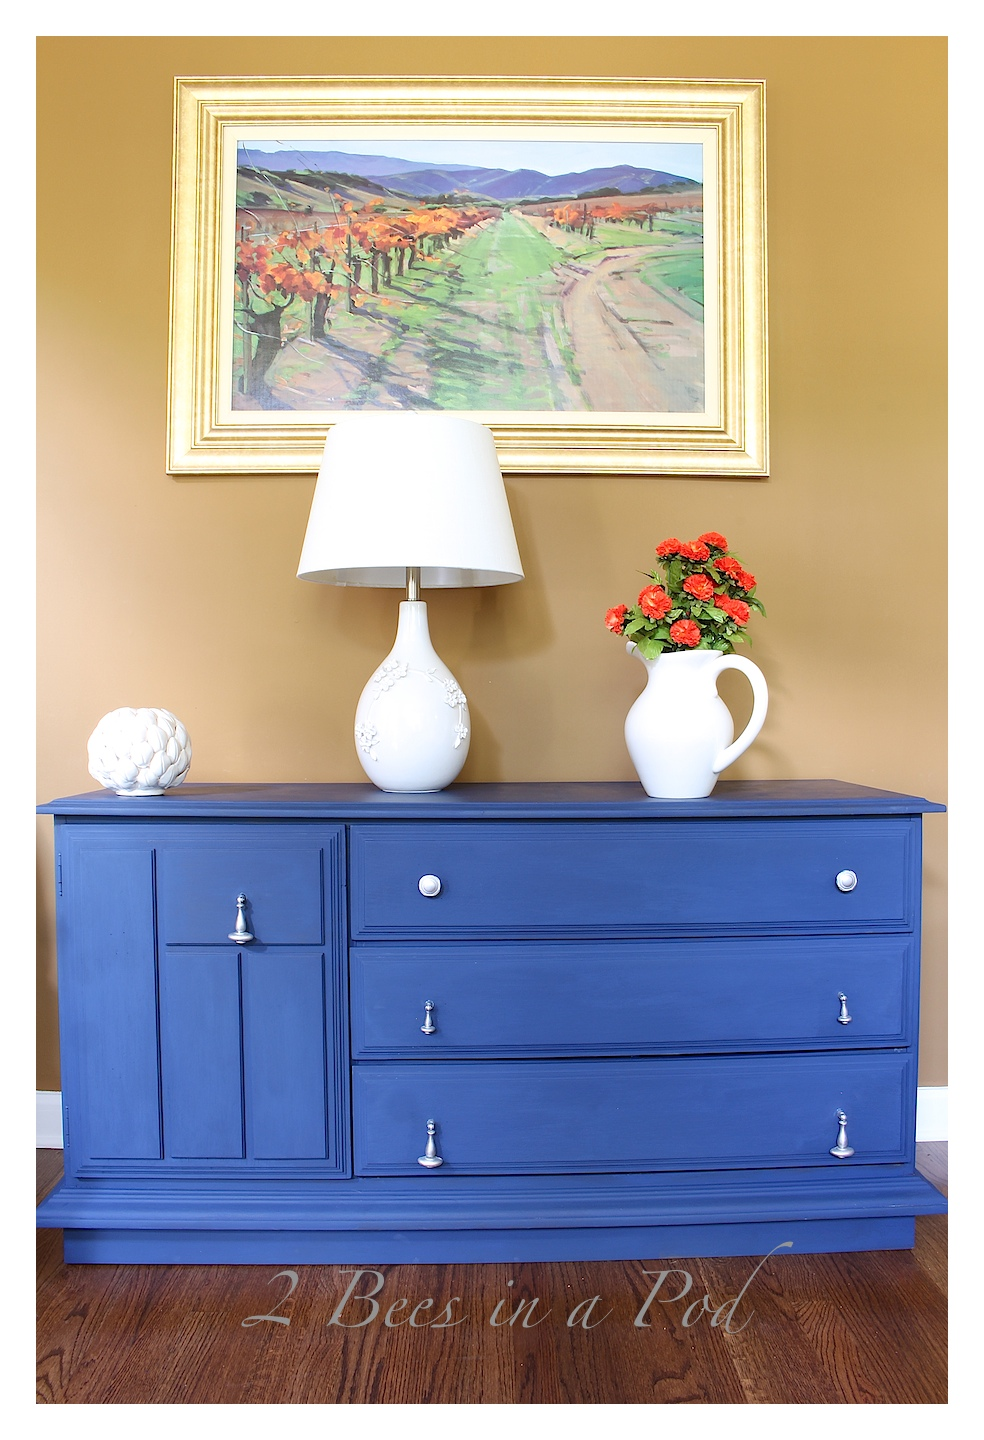 Painted Furniture - Annie Sloan Chalk Paint Buffet Makeover in Napoleonic Blue